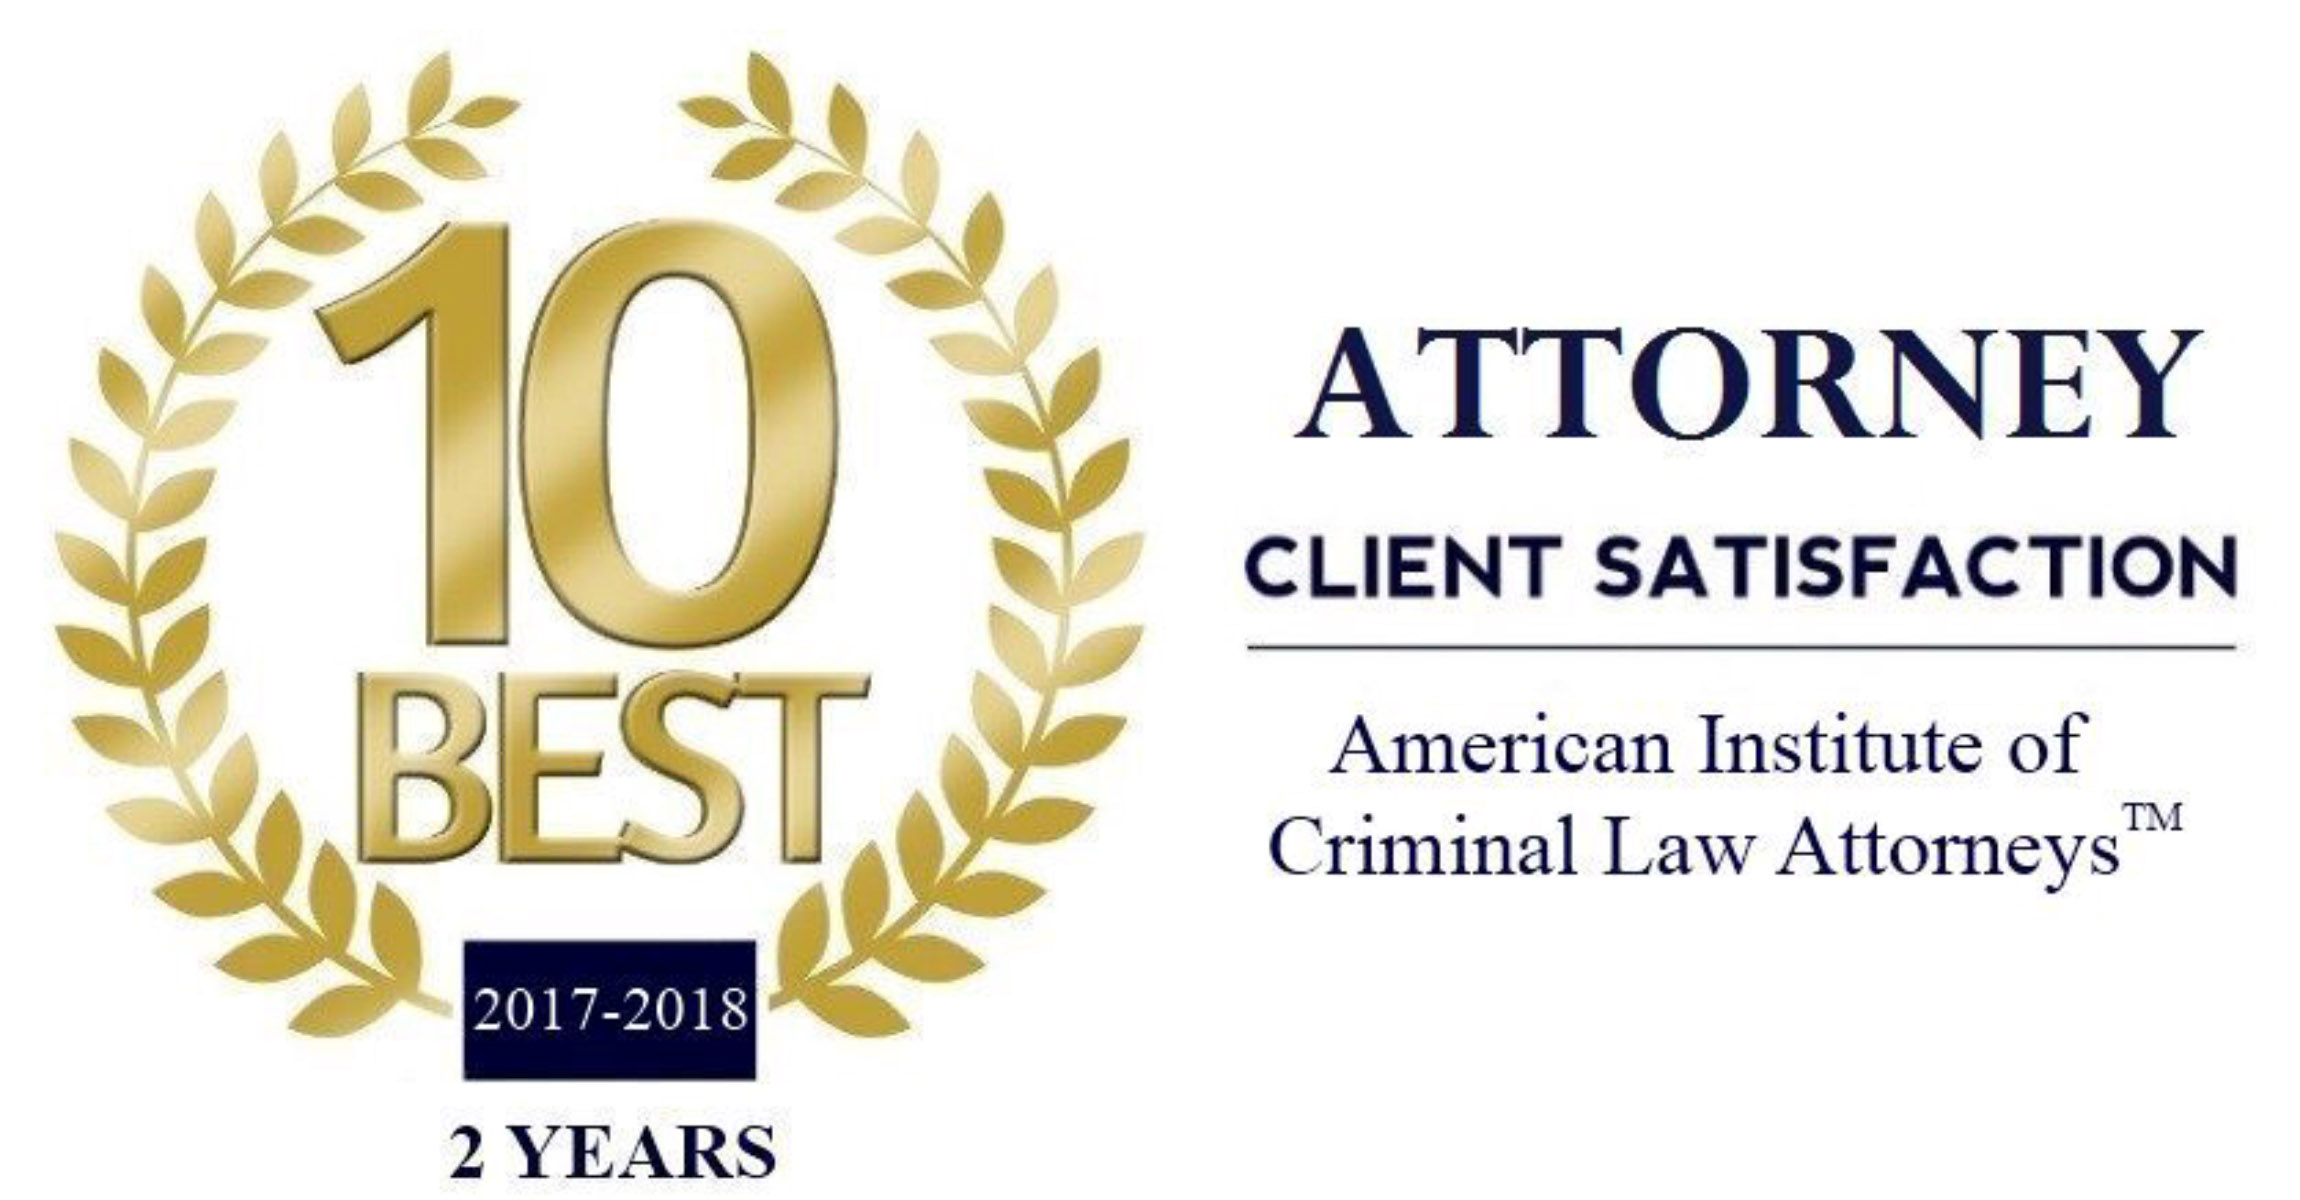 10 Best Award 2017-2018 - 2 Years Attorney Satisfaction by the American Institute of Criminal Law Attorneys™